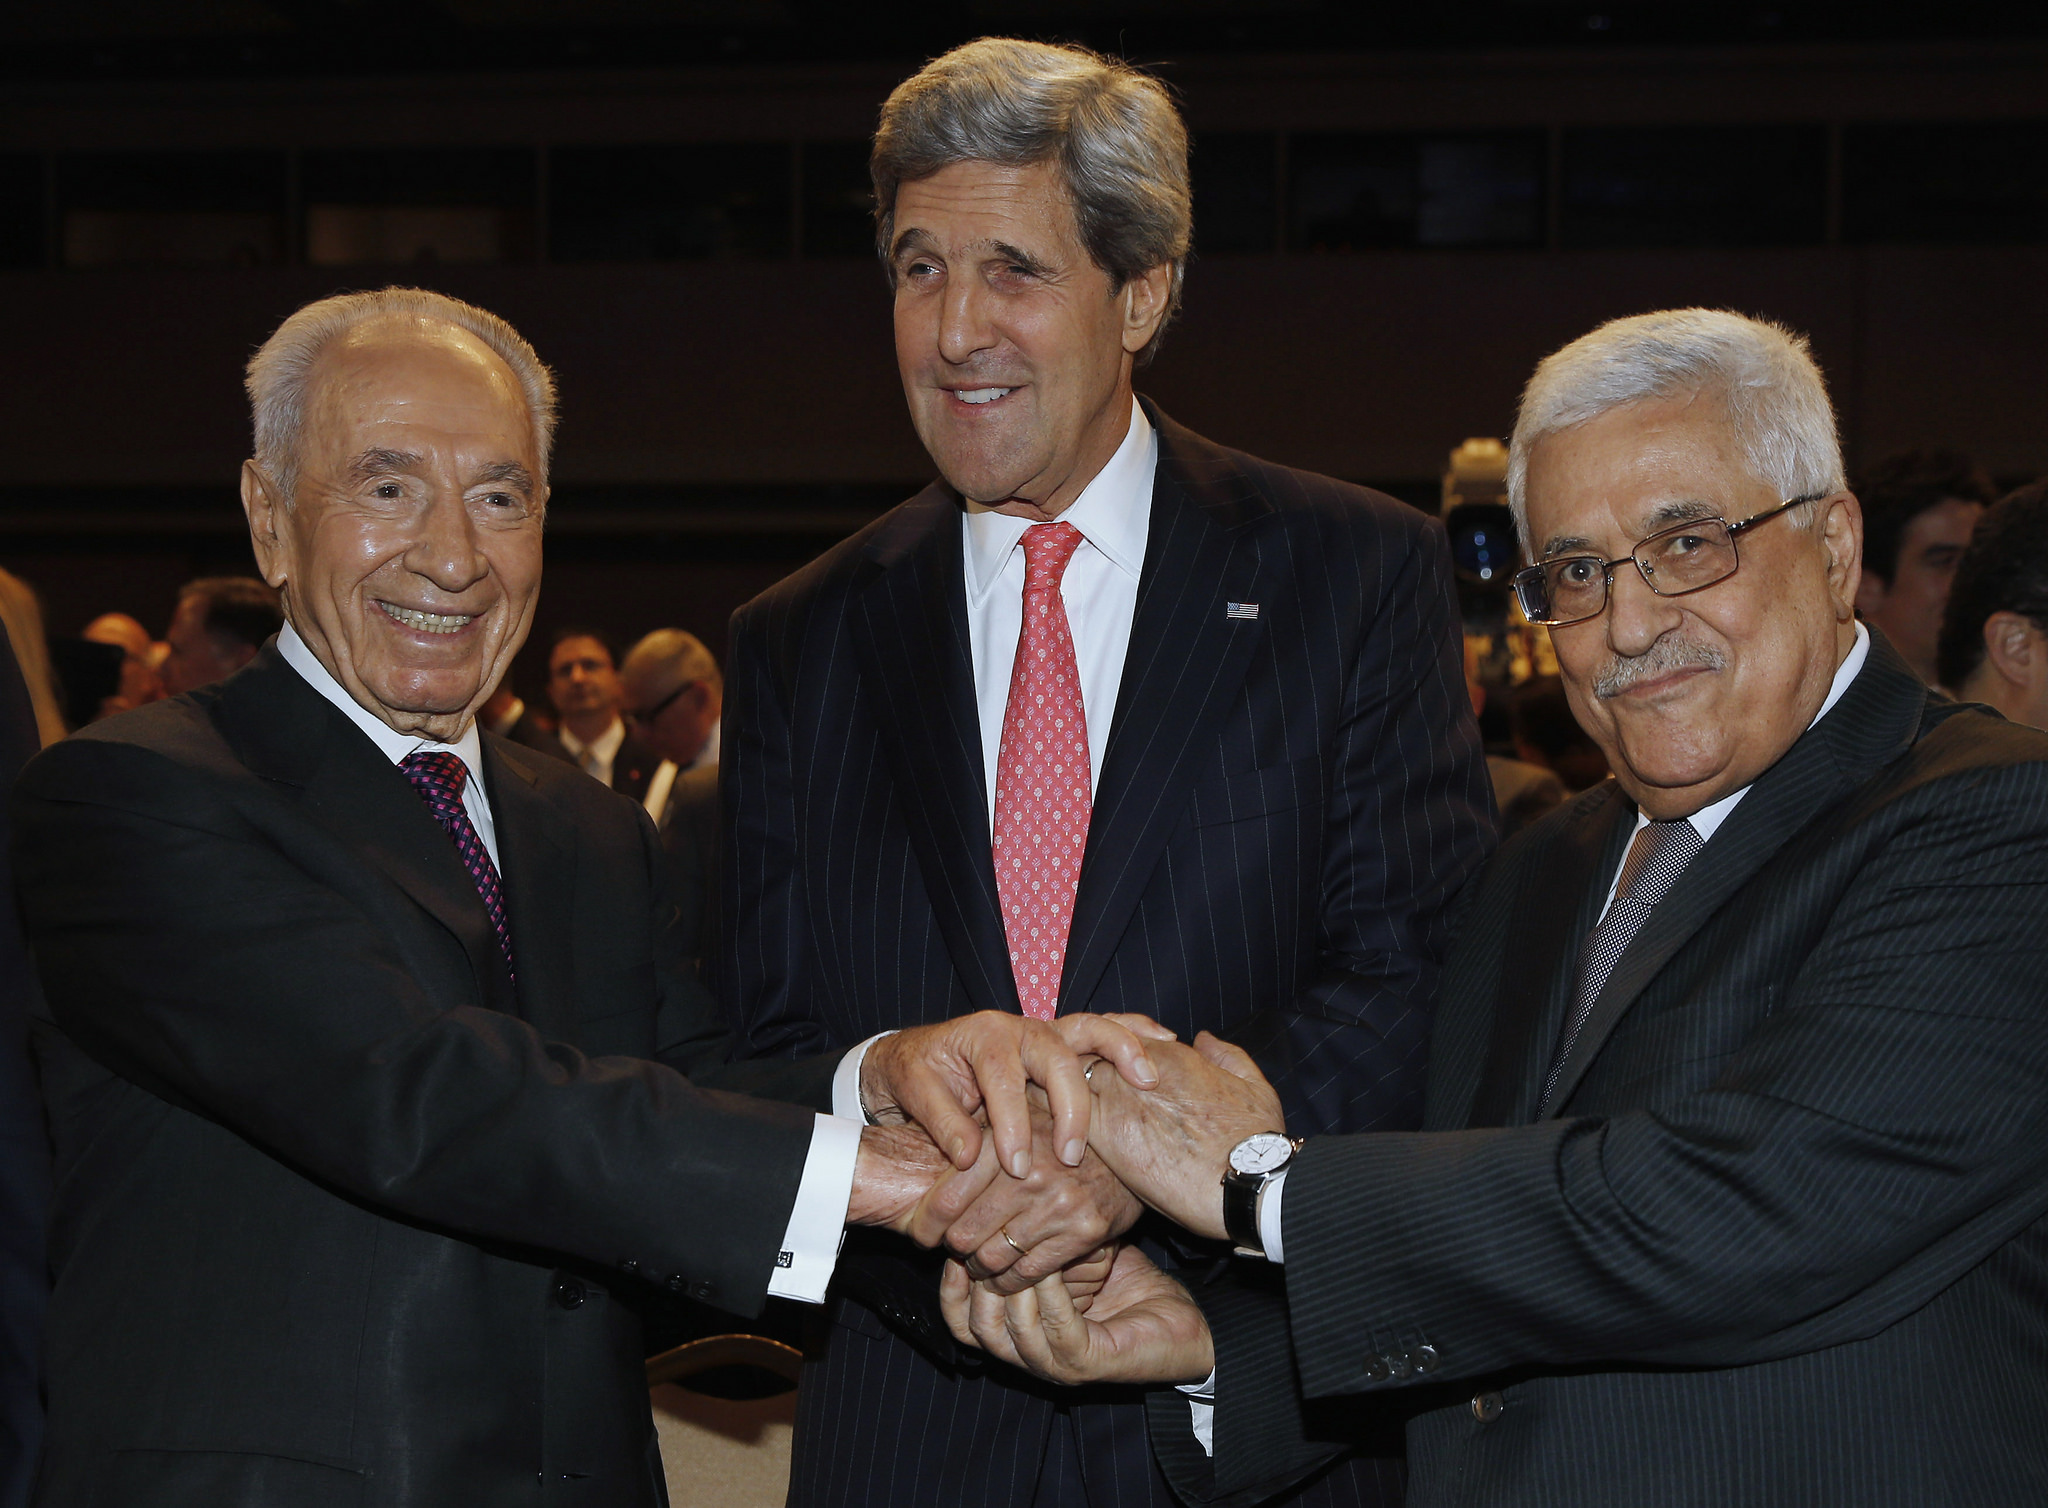 U.S. Secretary of State John Kerry (C) shakes hands with Israeli President Shimon Peres (L) and Palestinian President Mahmoud Abbas at the World Economic Forum on the Middle East and North Africa at the King Hussein Convention Centre, at the Dead Sea May 26, 2013. REUTERS/Jim Young